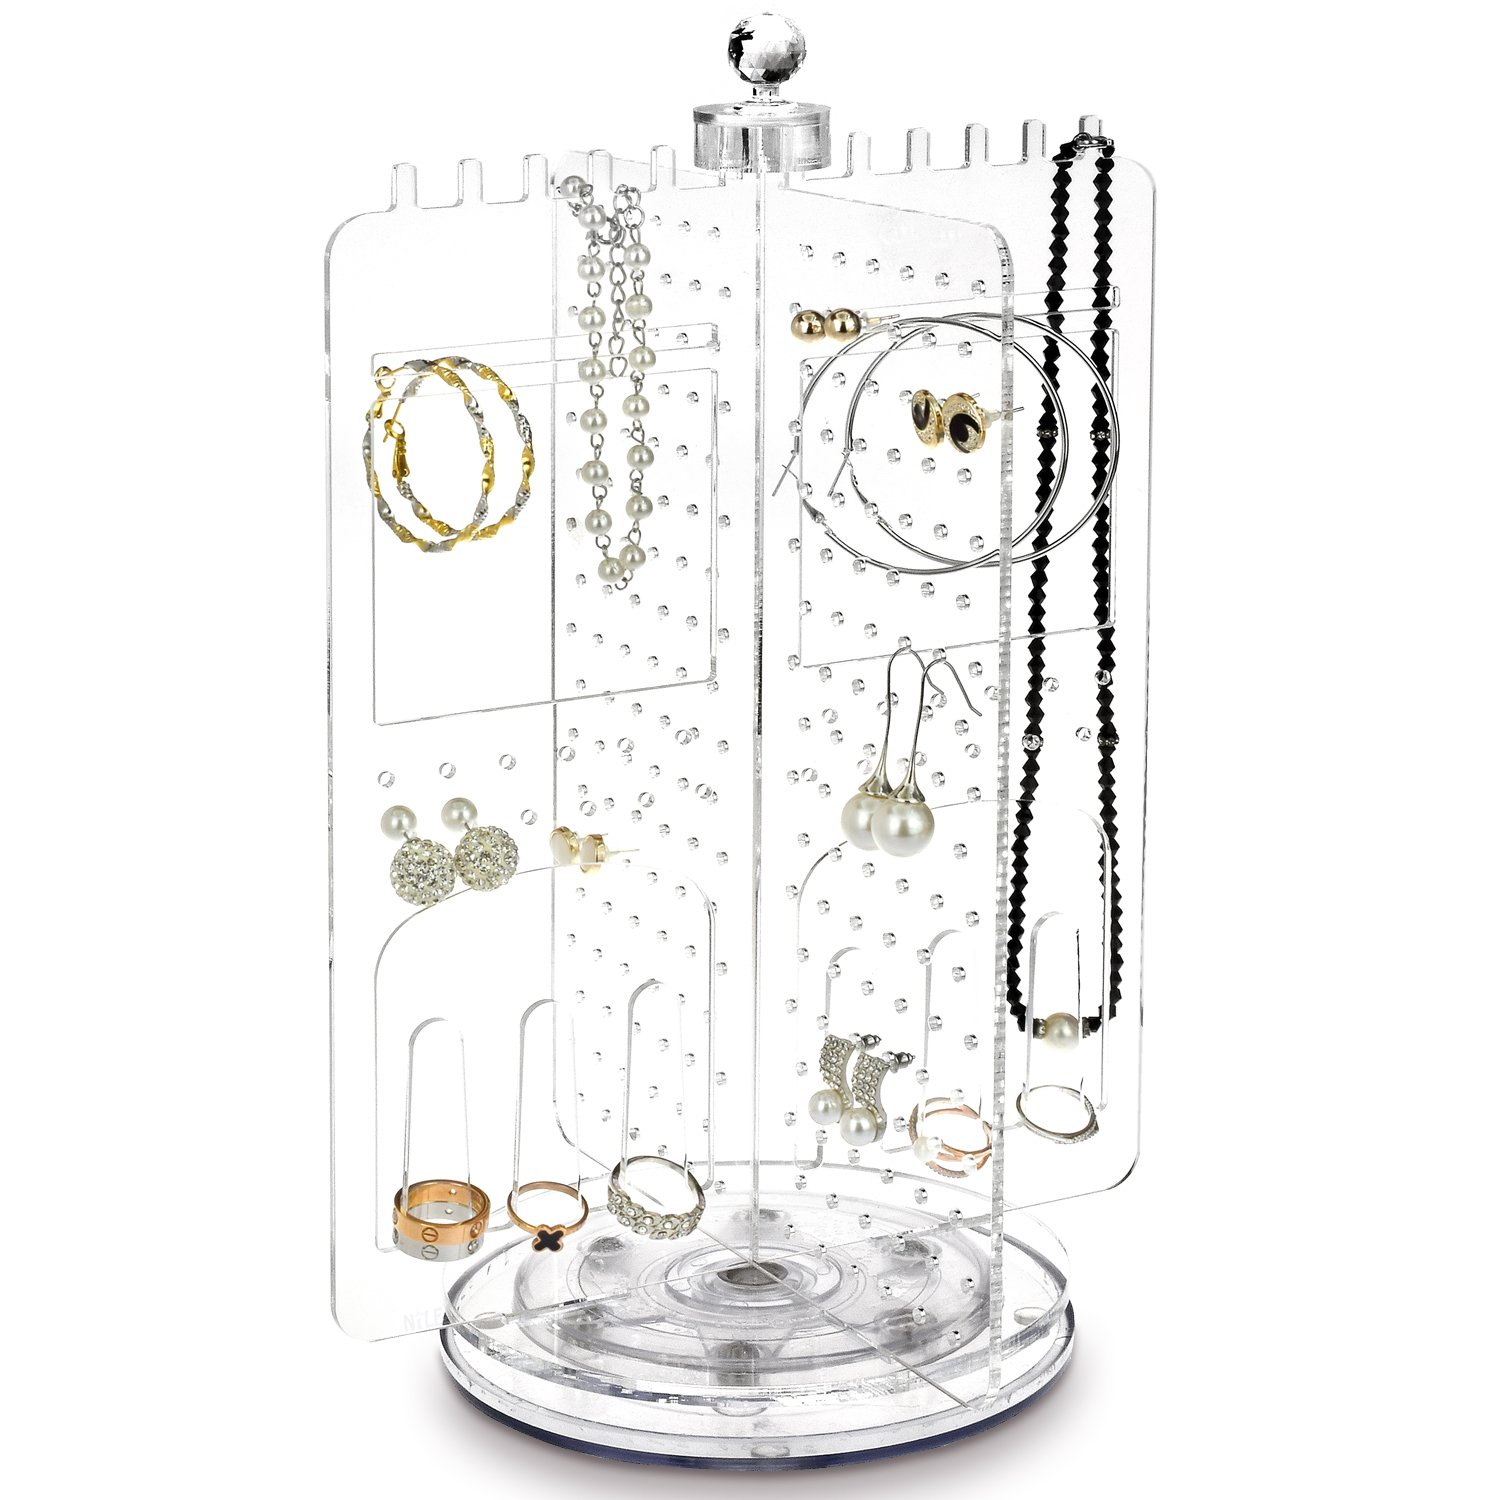 Ikee Design Acrylic Rotating Jewelry Stand Earring Holder Accessories Organizer